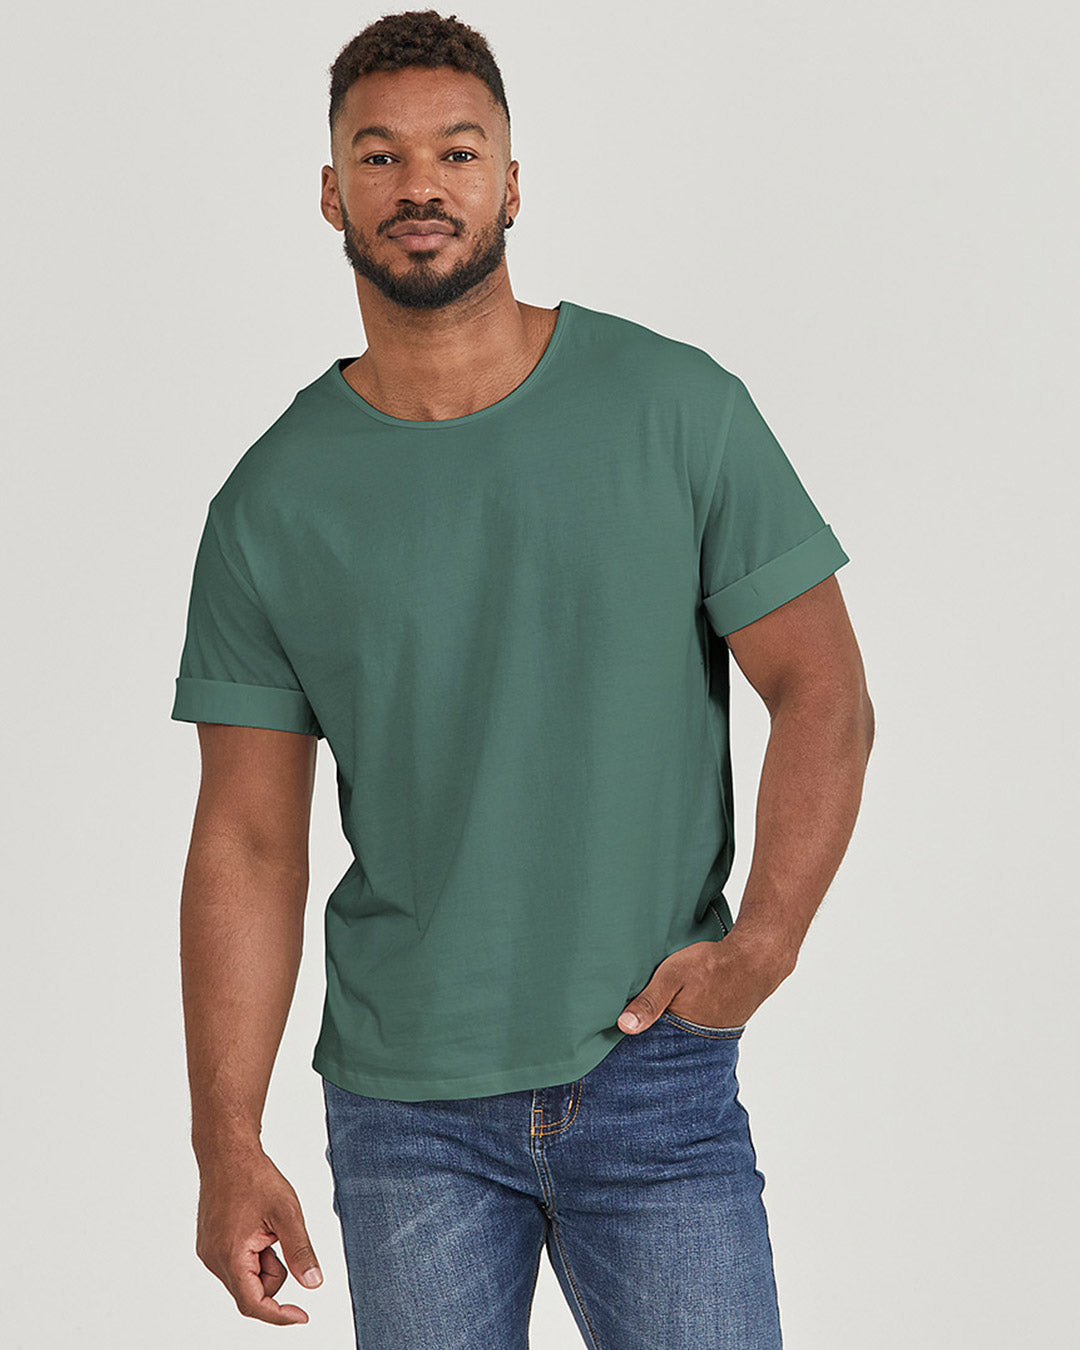 Mens Magic Fit® T-shirts in limited edition Verdigris   Citizen Wolf